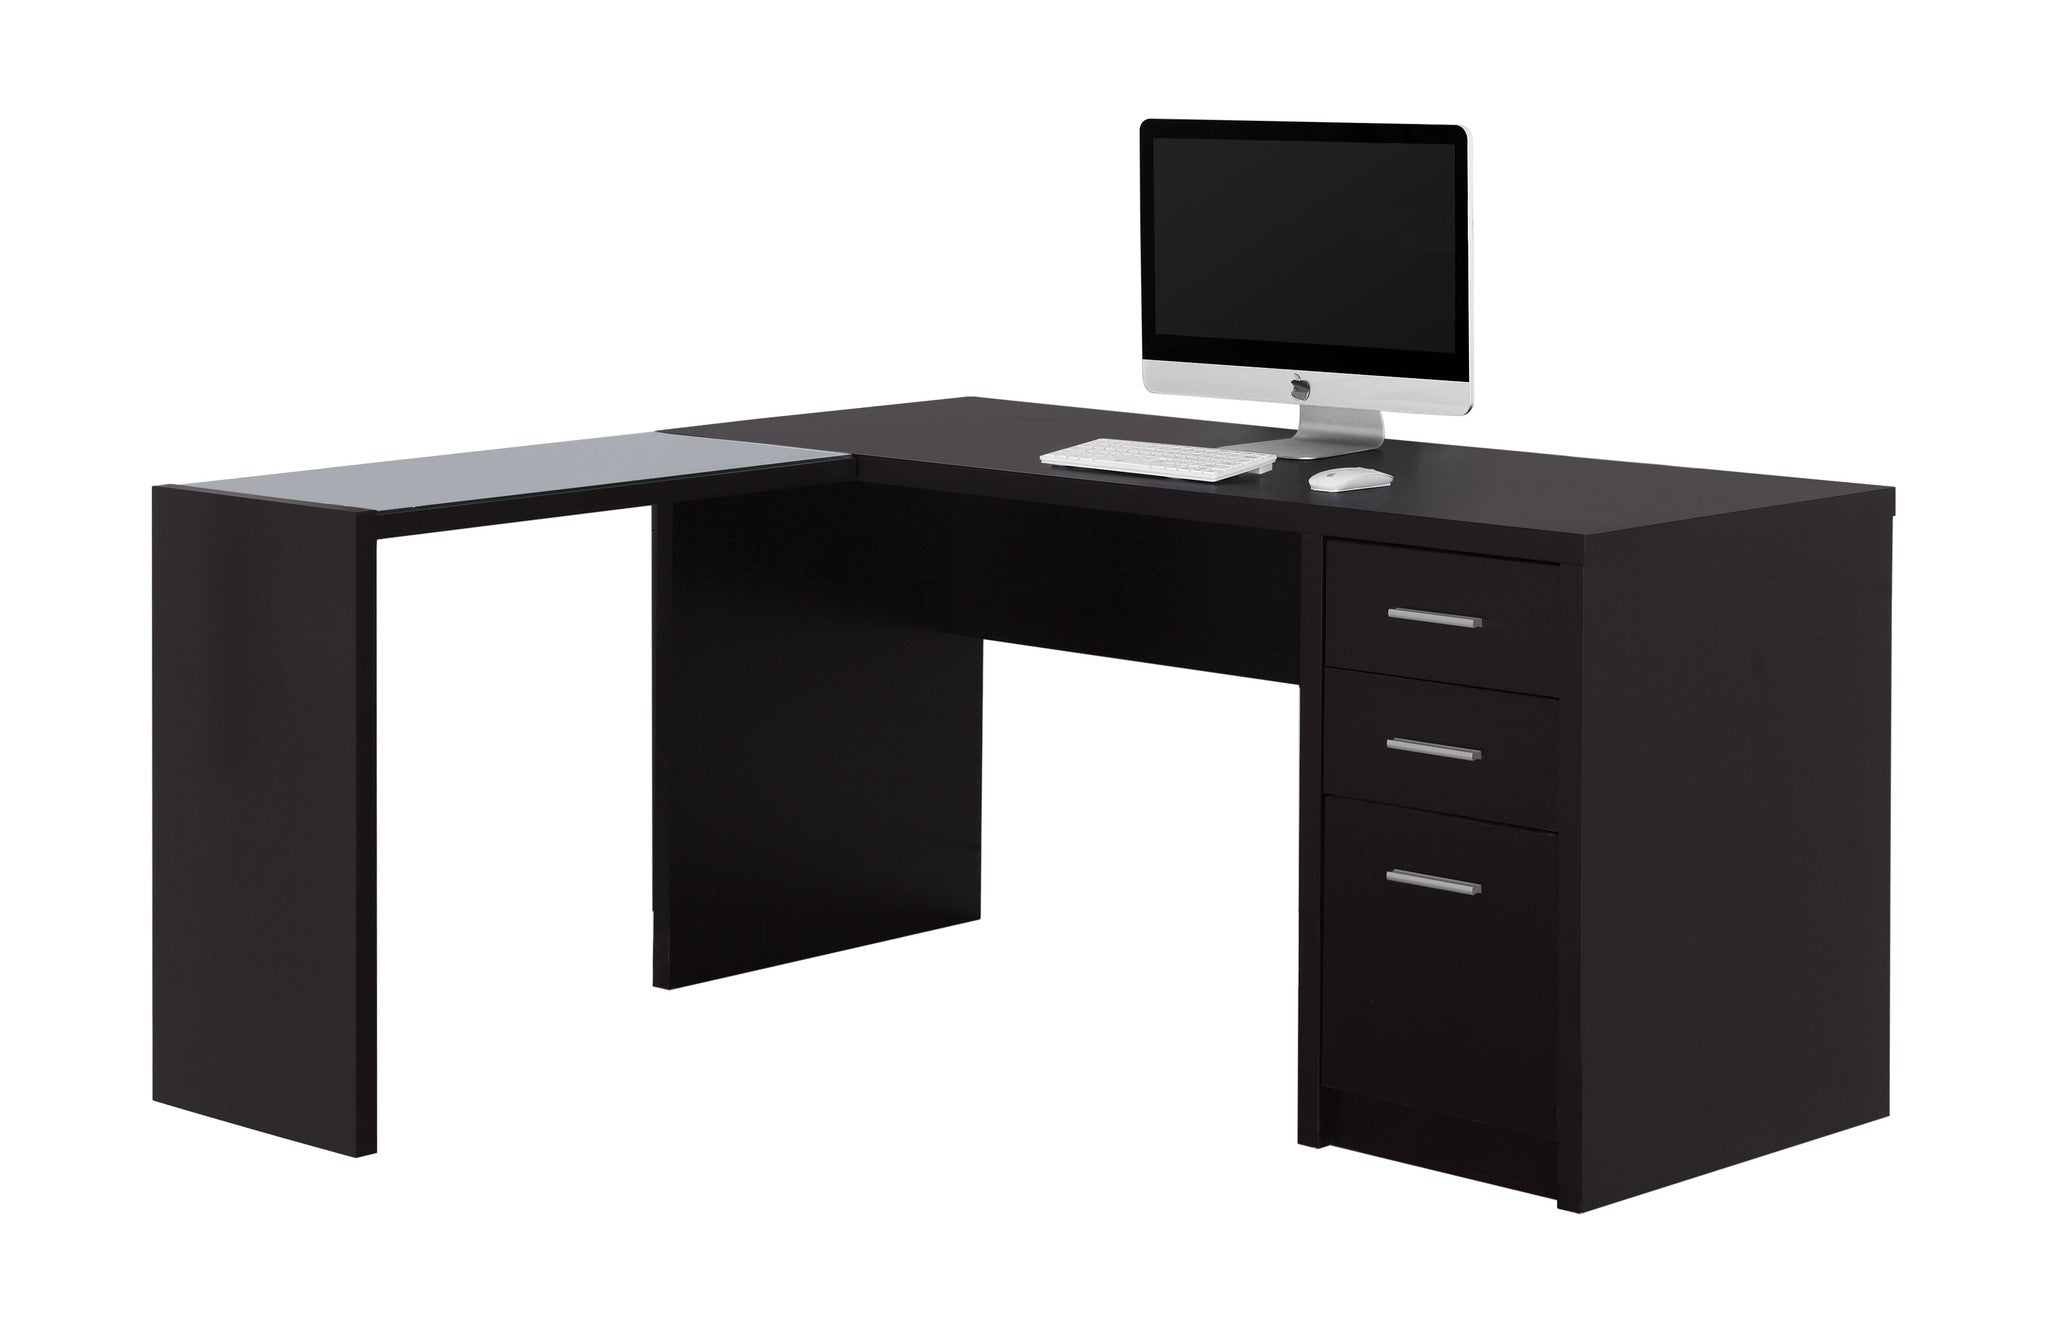 Cappuccino Corner Computer Desk With Tempered Glass The